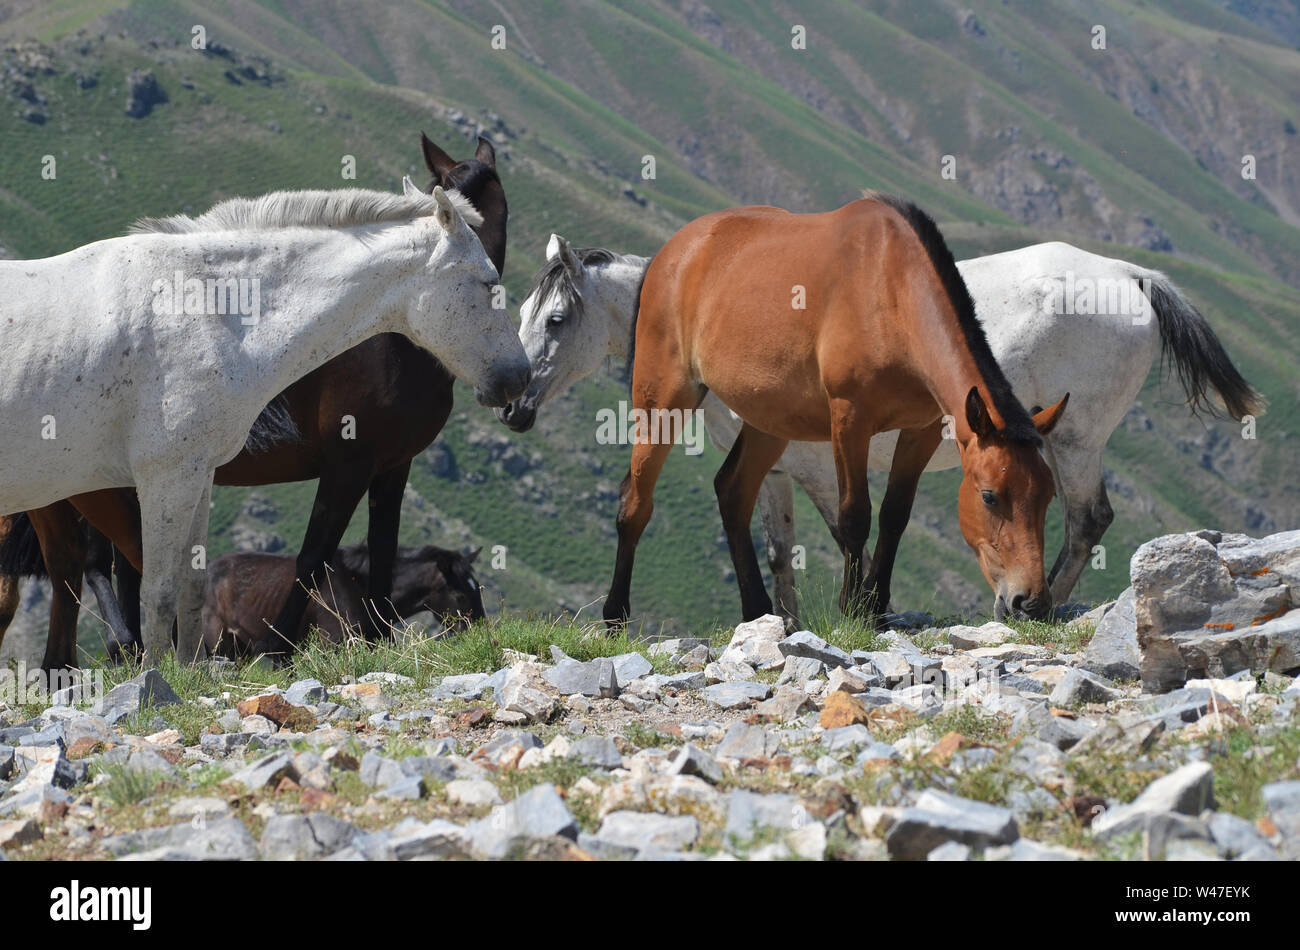 Wild horses near Greater Chingam peak, Ugam-Chatkal National park, Uzbekistan Stock Photo